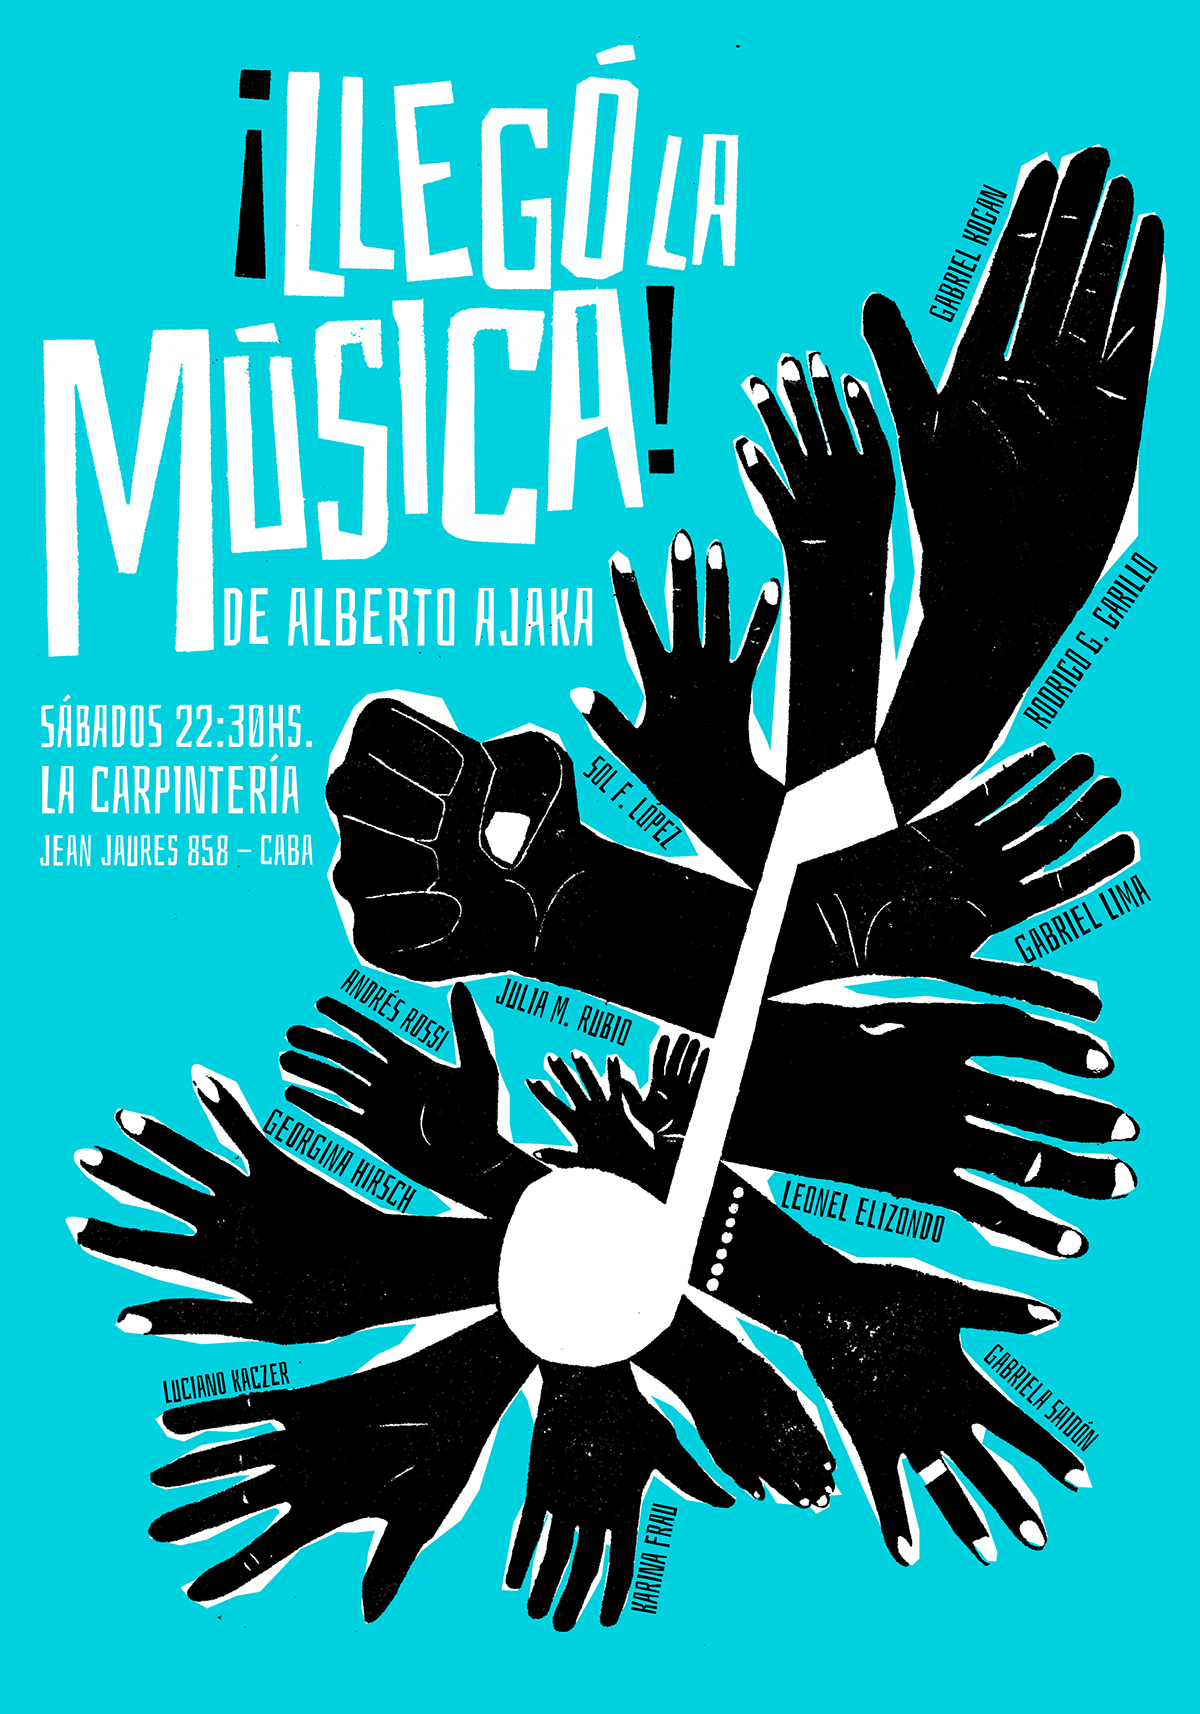 Lleg la Msica  Afiche on Behance